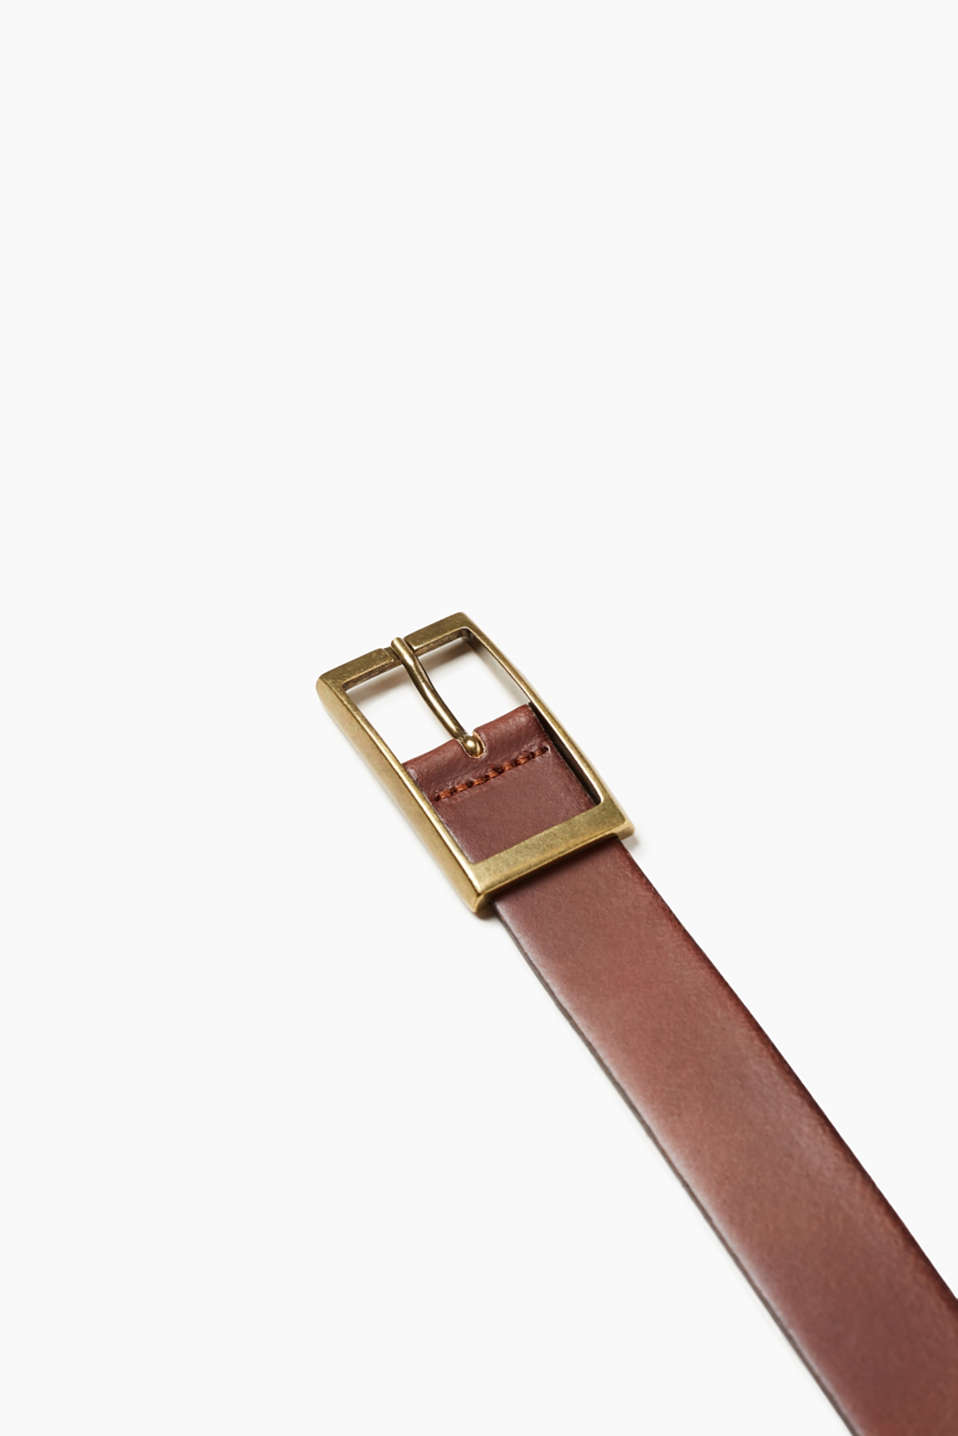 The bold buckle with a vintage finish makes this belt a favourite accessory.